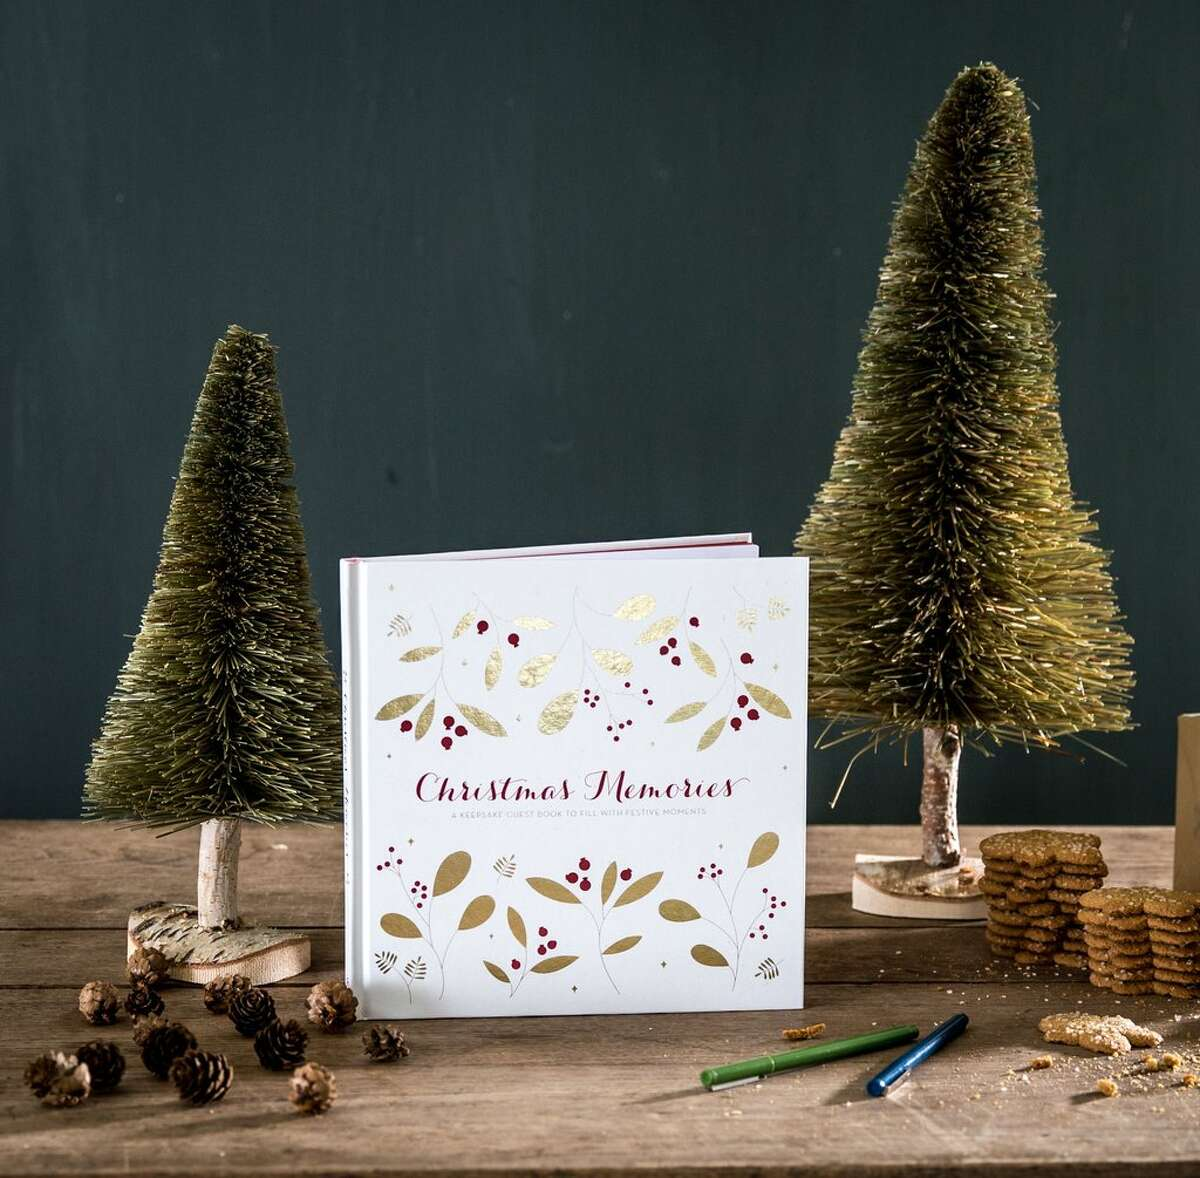 CHRISTMAS MEMORIES GUEST BOOK: $25